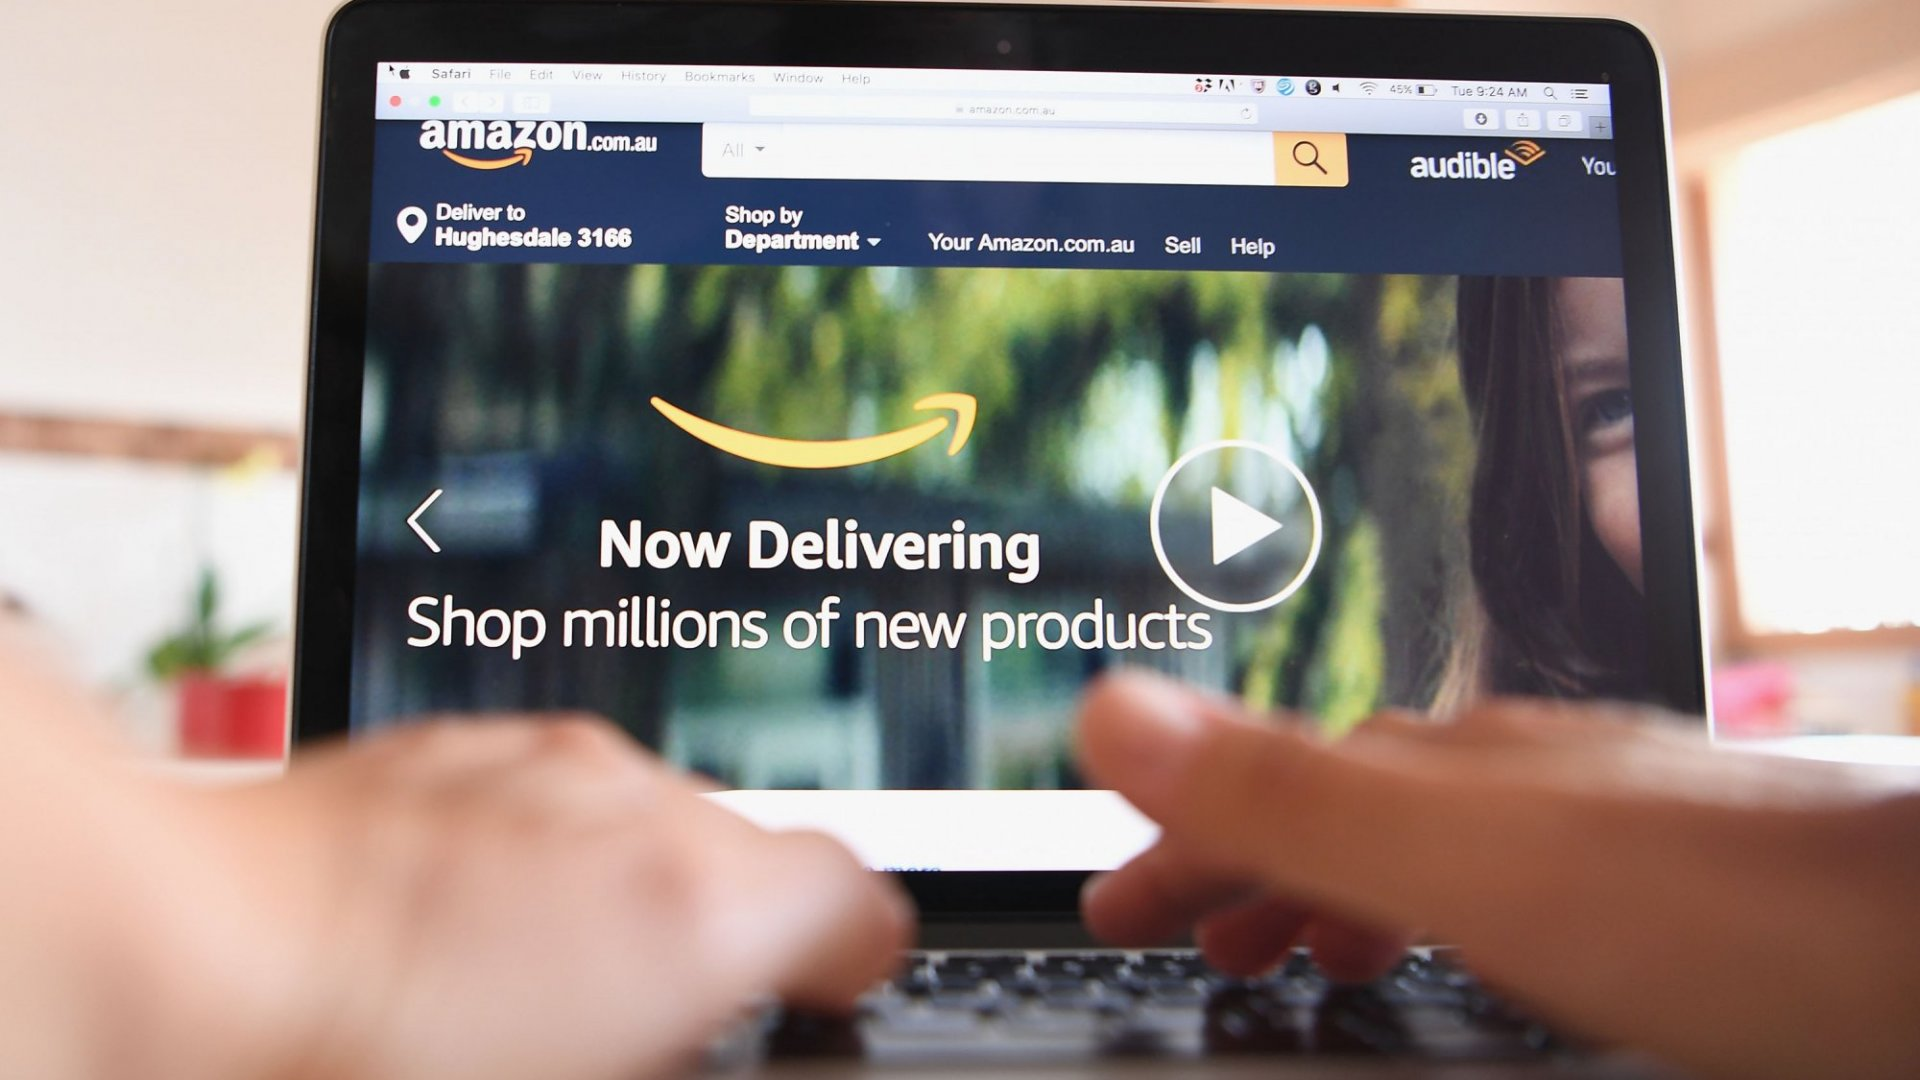 Amazon Beats Up Its Brand by Locking Customer Accounts for No Apparent Reason